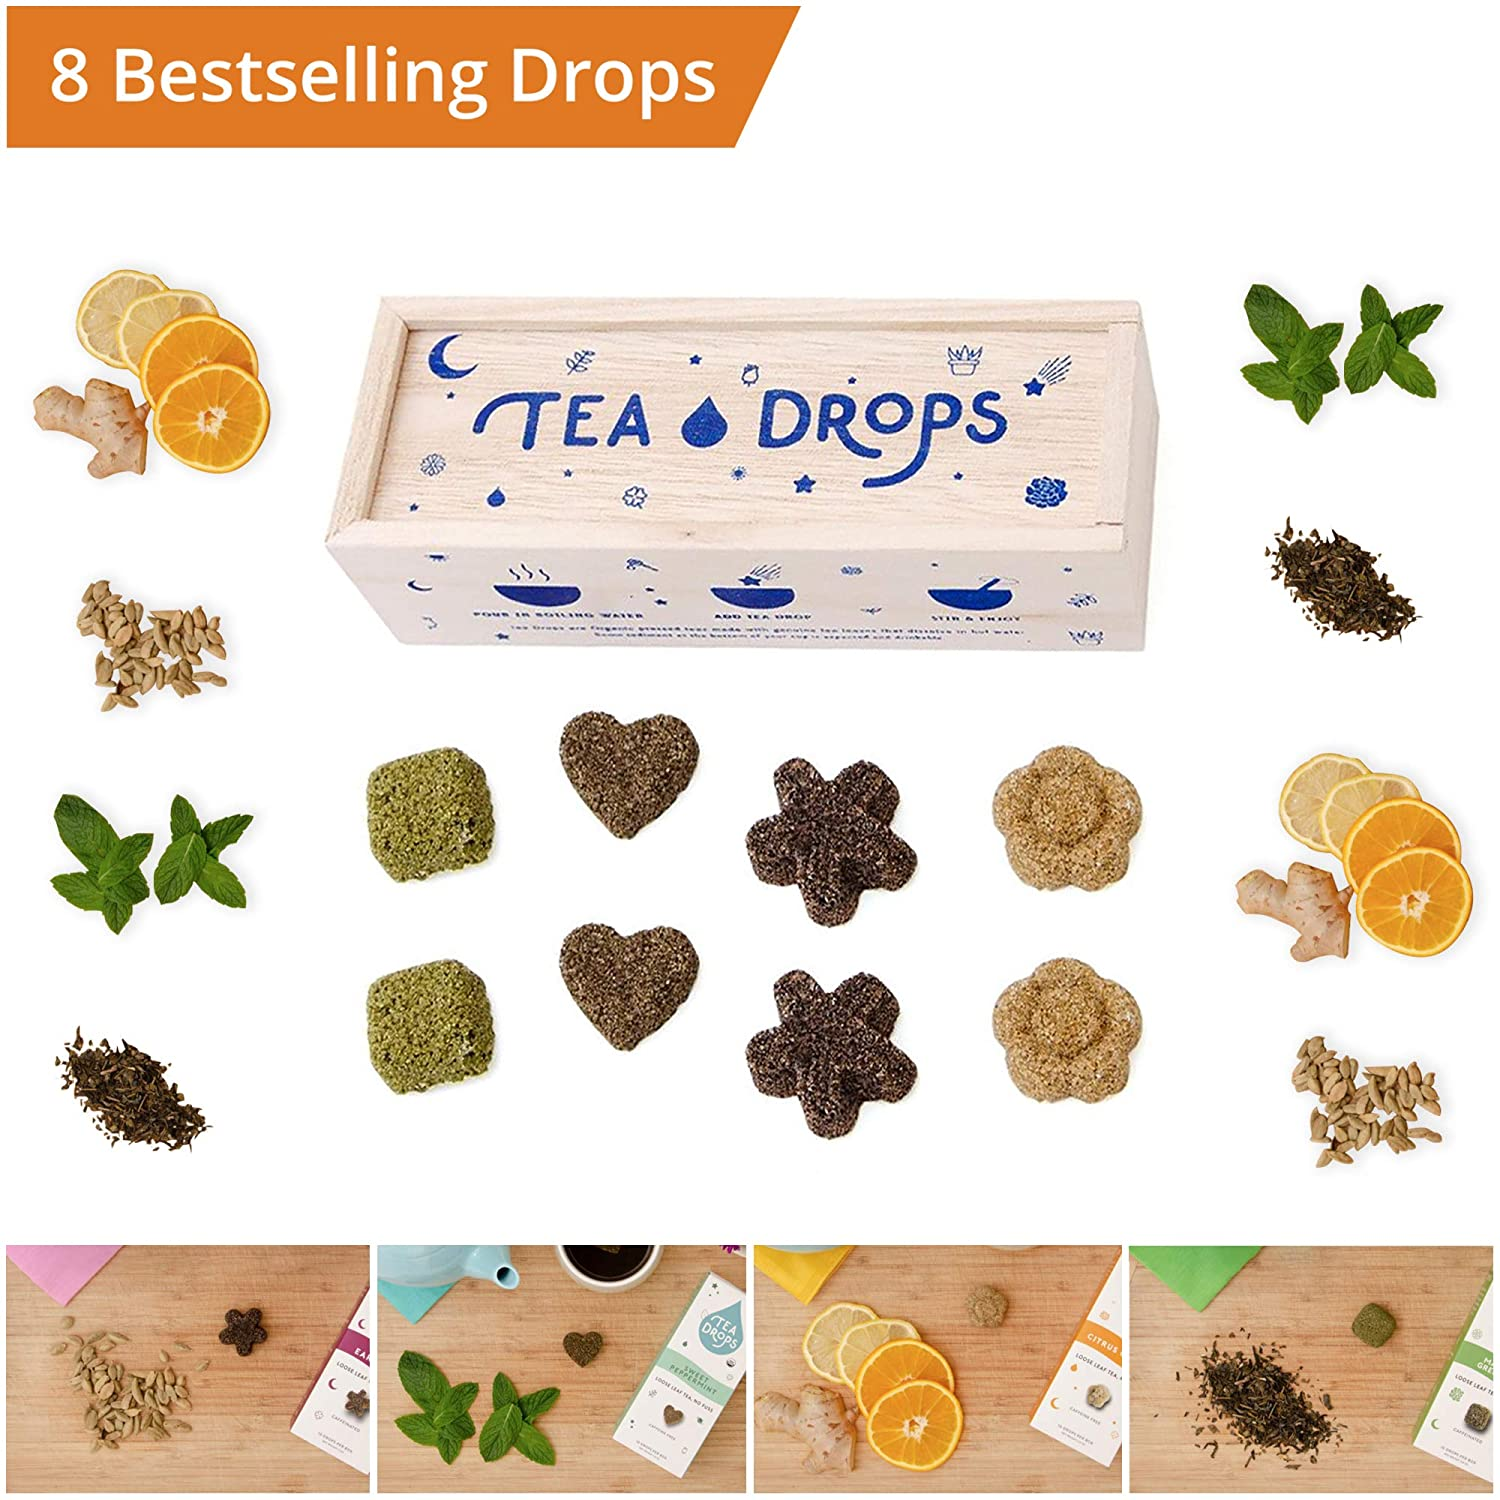 Tea Drops Instant Organic Pressed Teas - Medium Herbal Tea Sampler Assortment Box - Dissolves in your Cup Eliminating the Need for Teabags and Sweetener Packets - Loose Leaf Tea without the Fuss - Gre 6